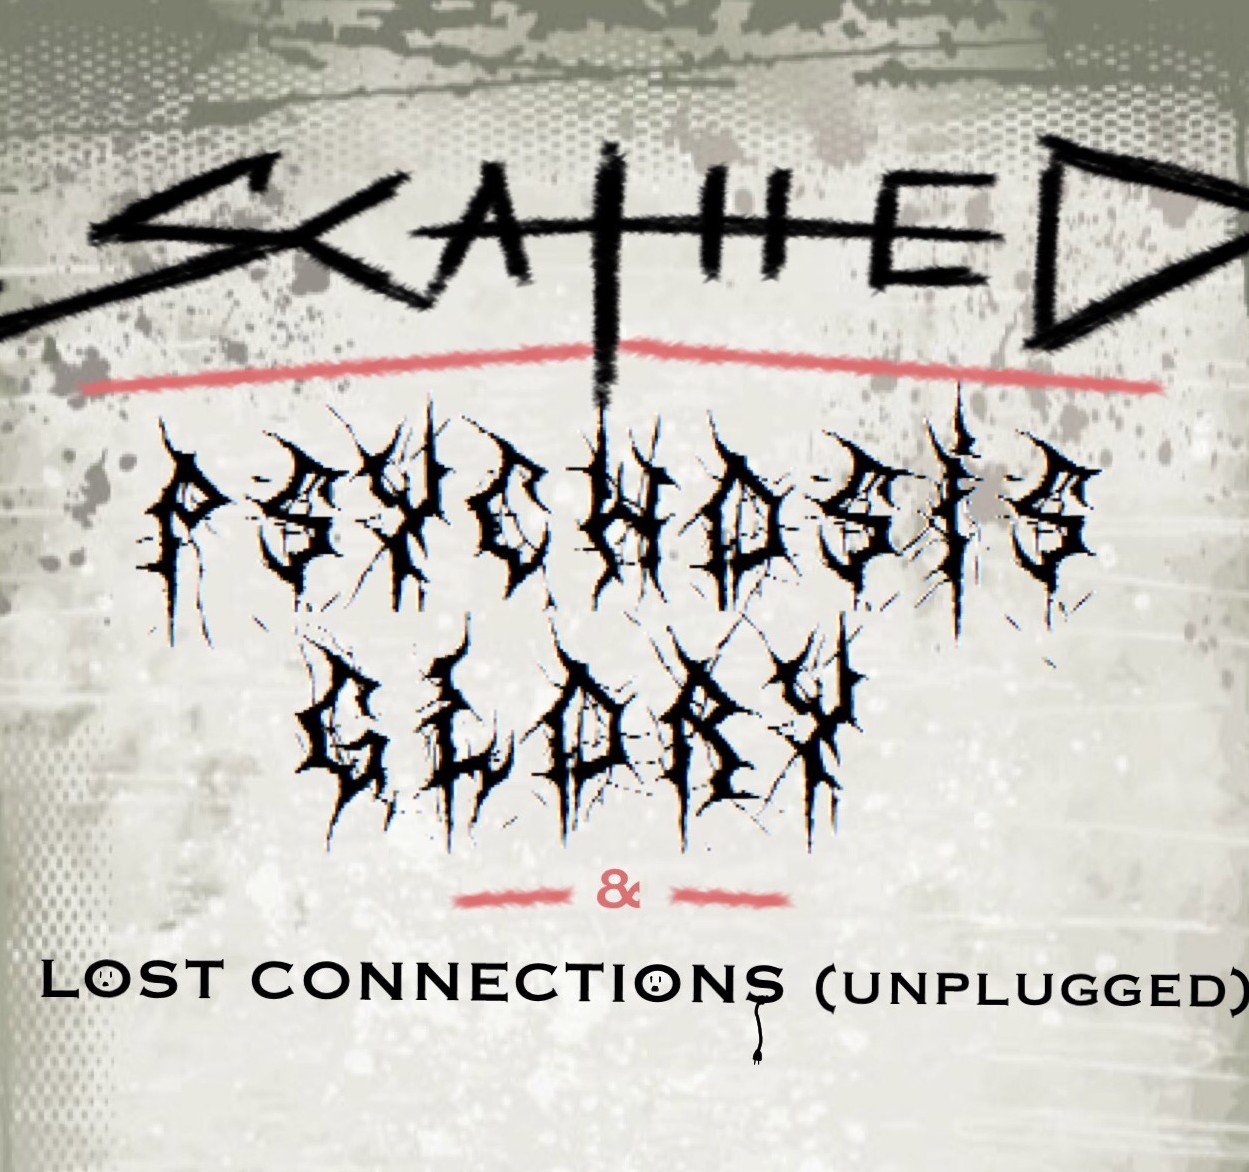 Scathed, Psychosis Glory, Lost Connections